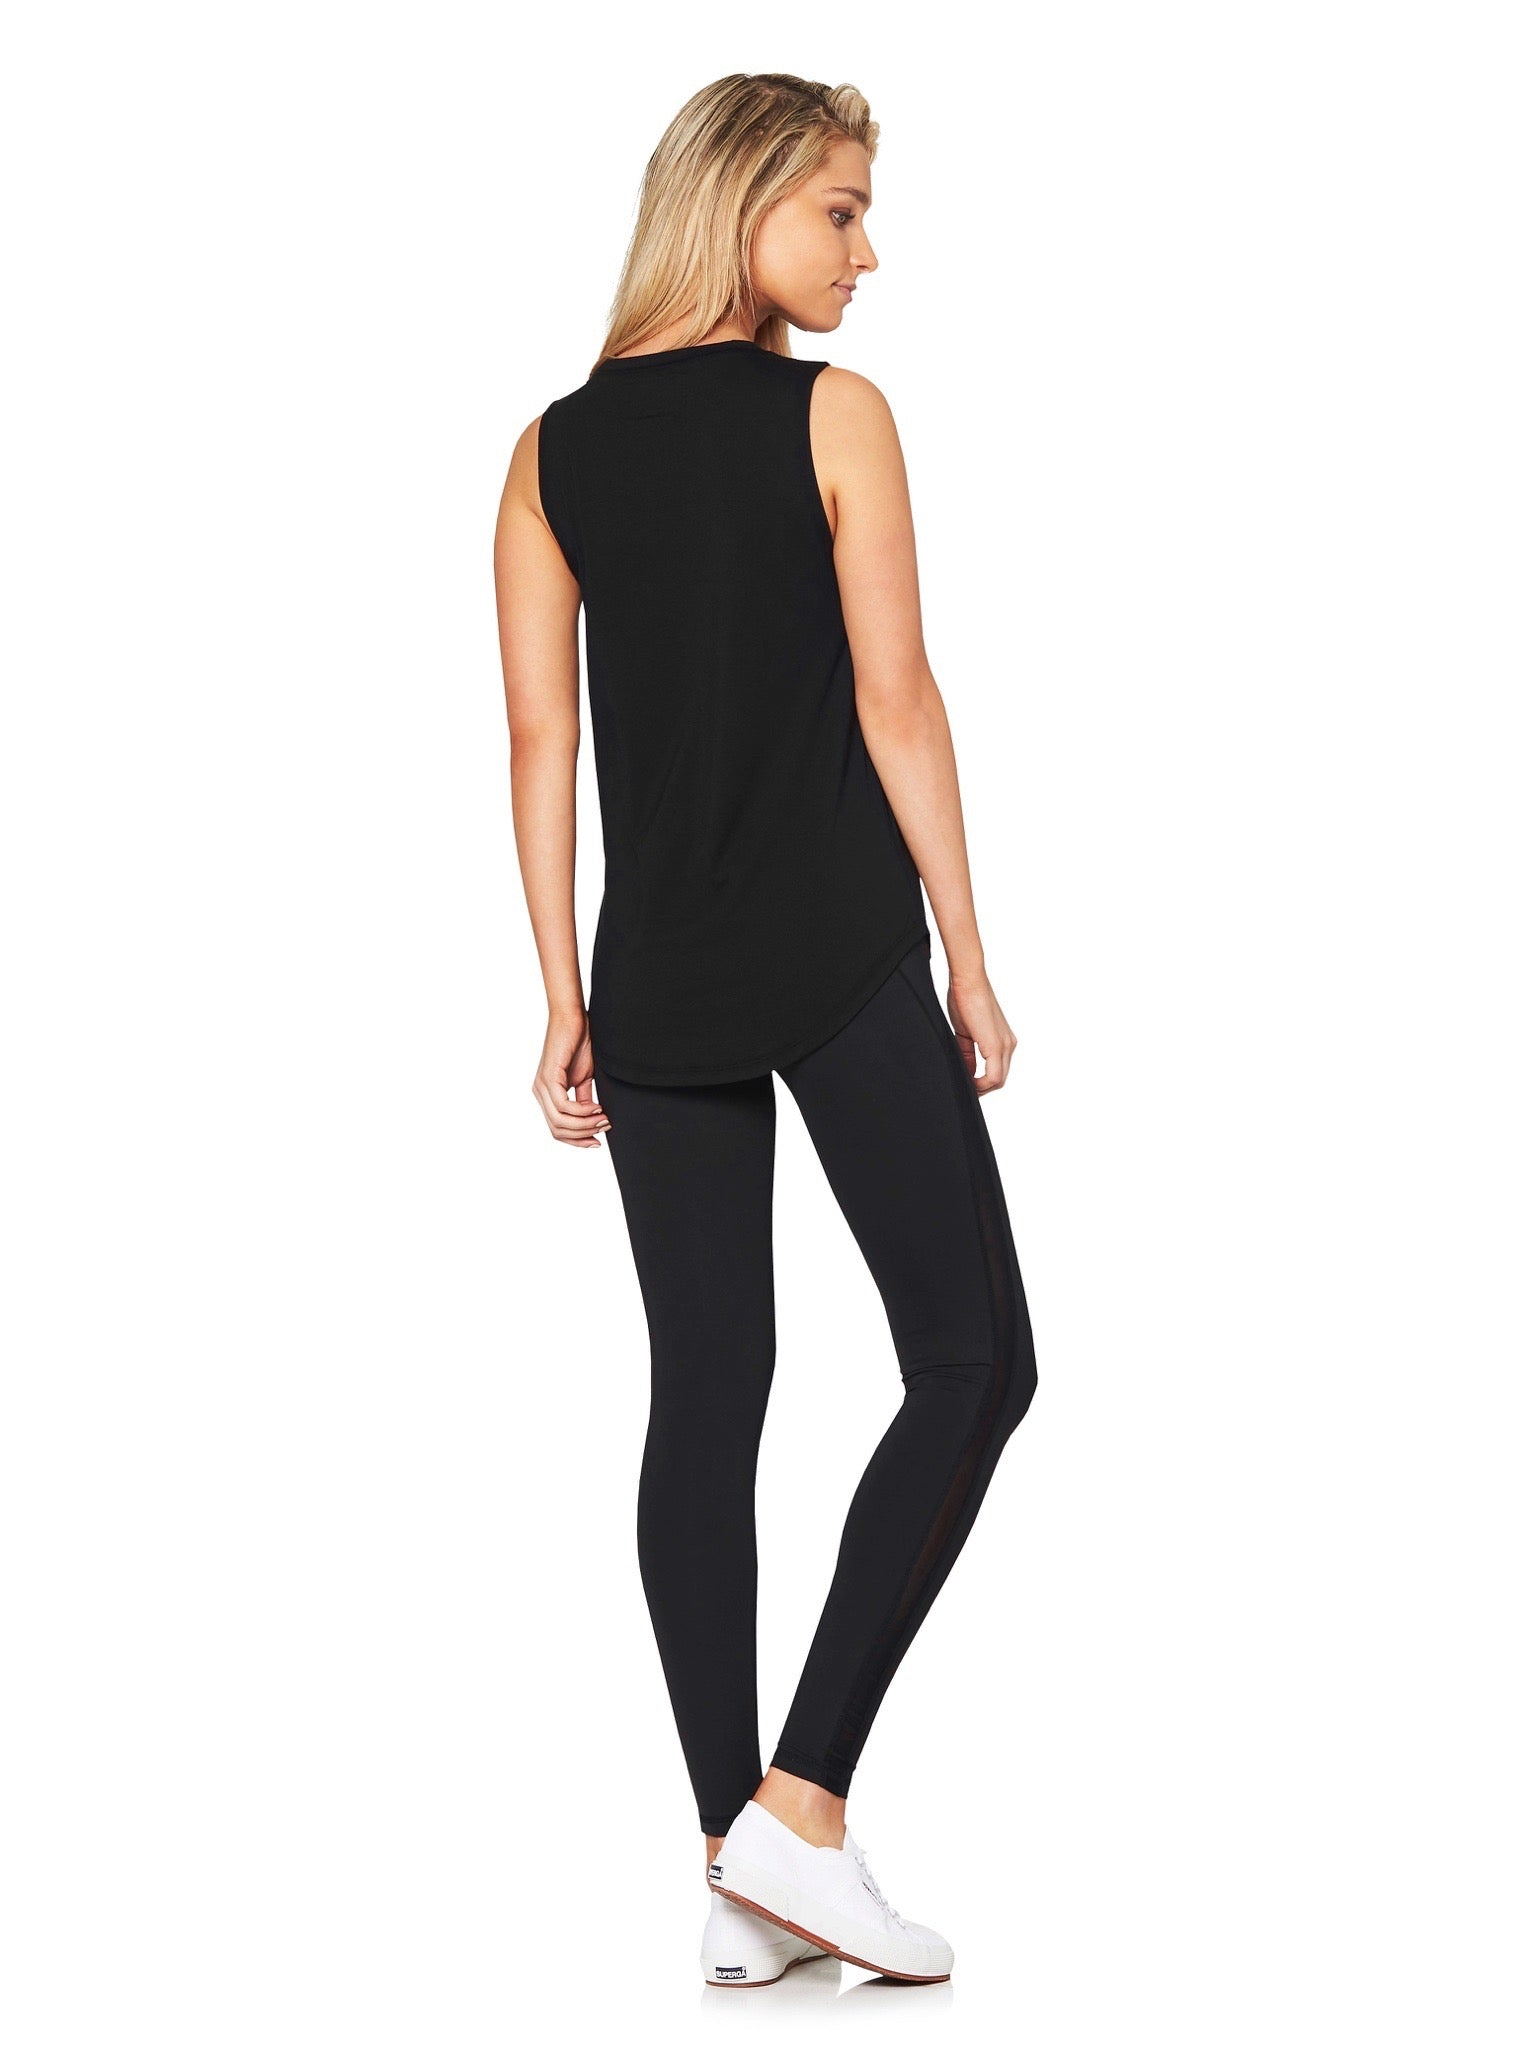 HARKNESS LUXE MUSCLE TEE - BLACK